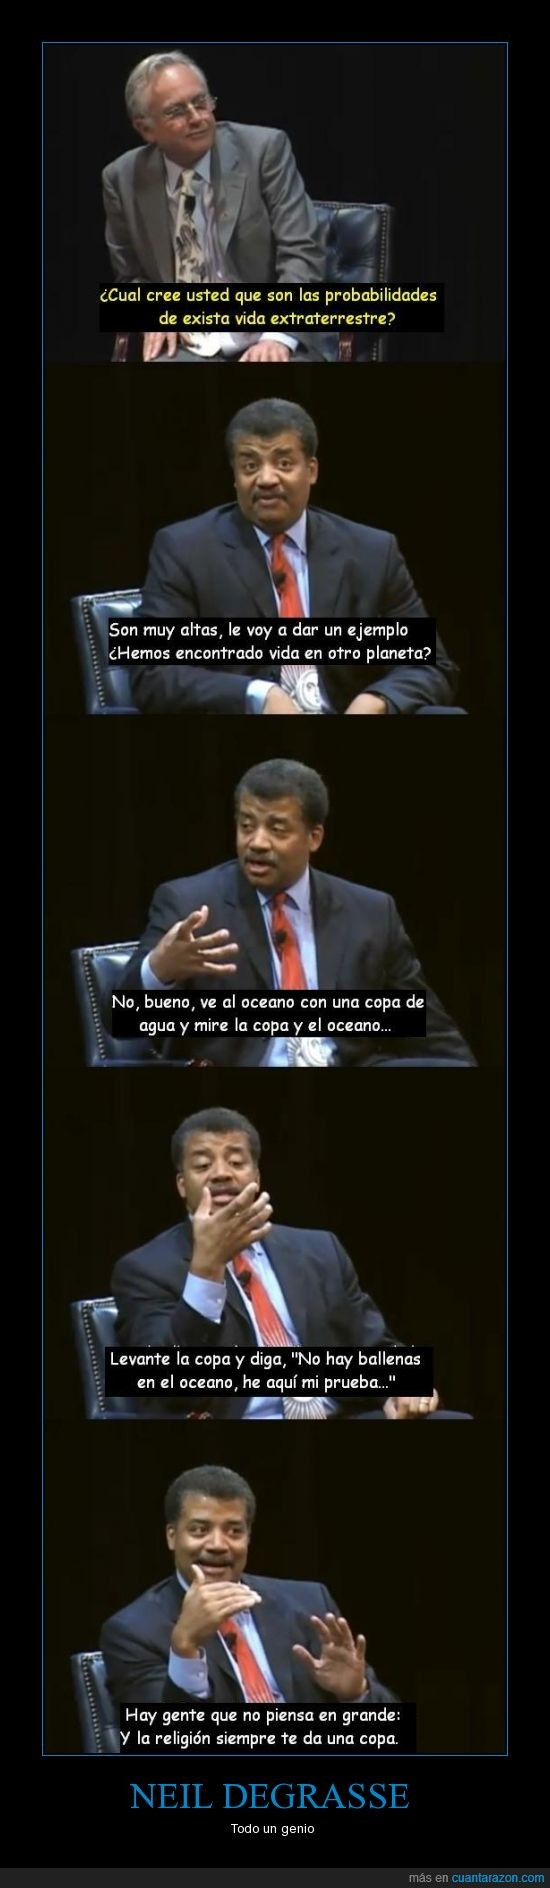 COSMOS,DeGrasse,Discovery channel,genio,Neil